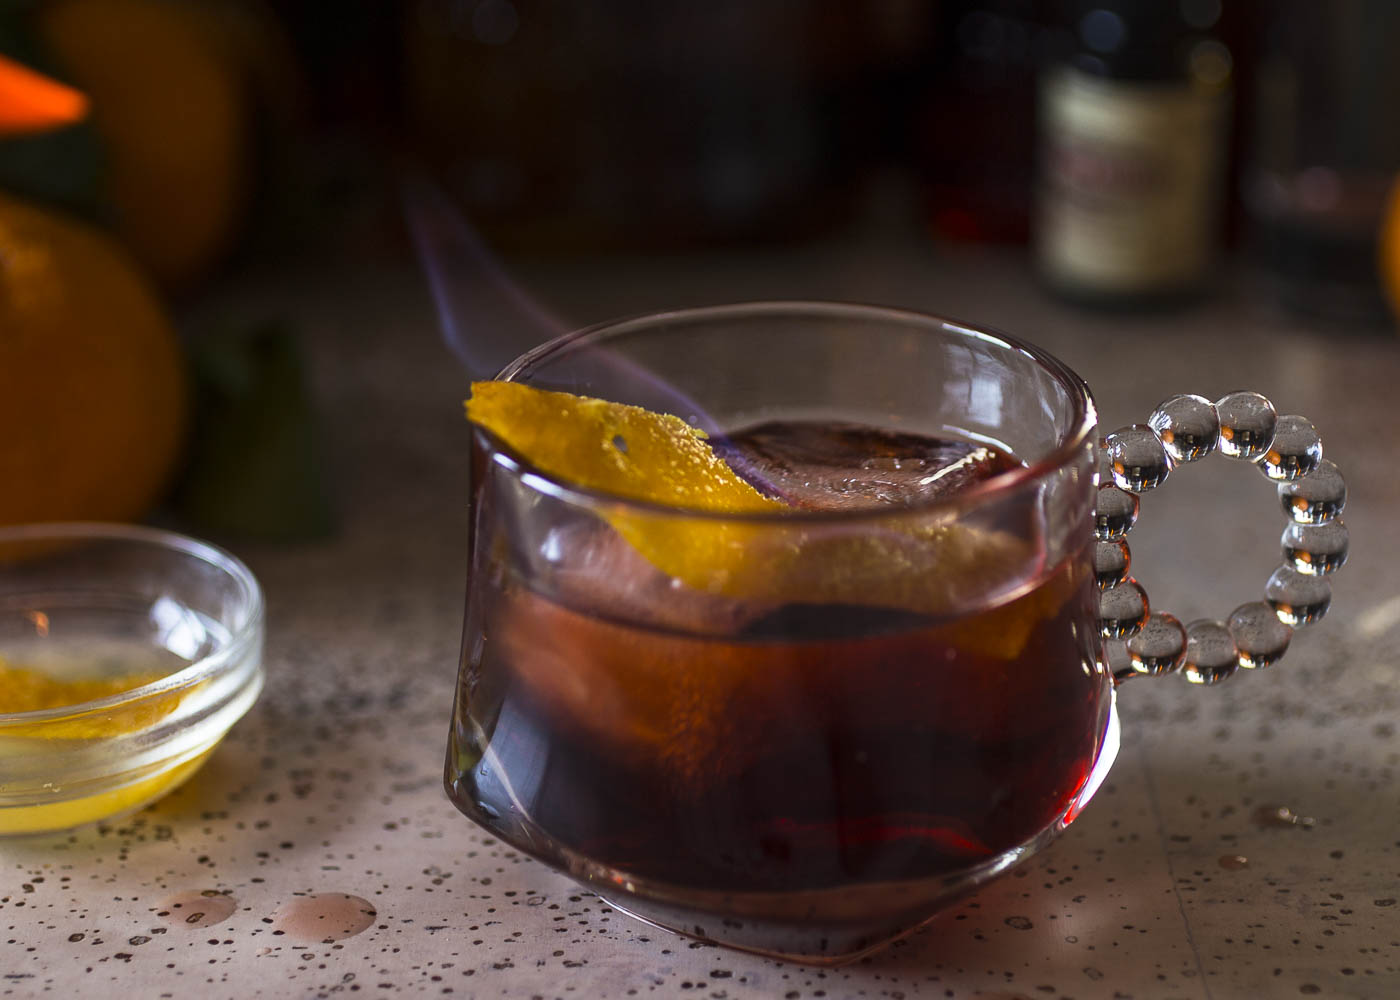 A holiday rum negroni for our inner surfer